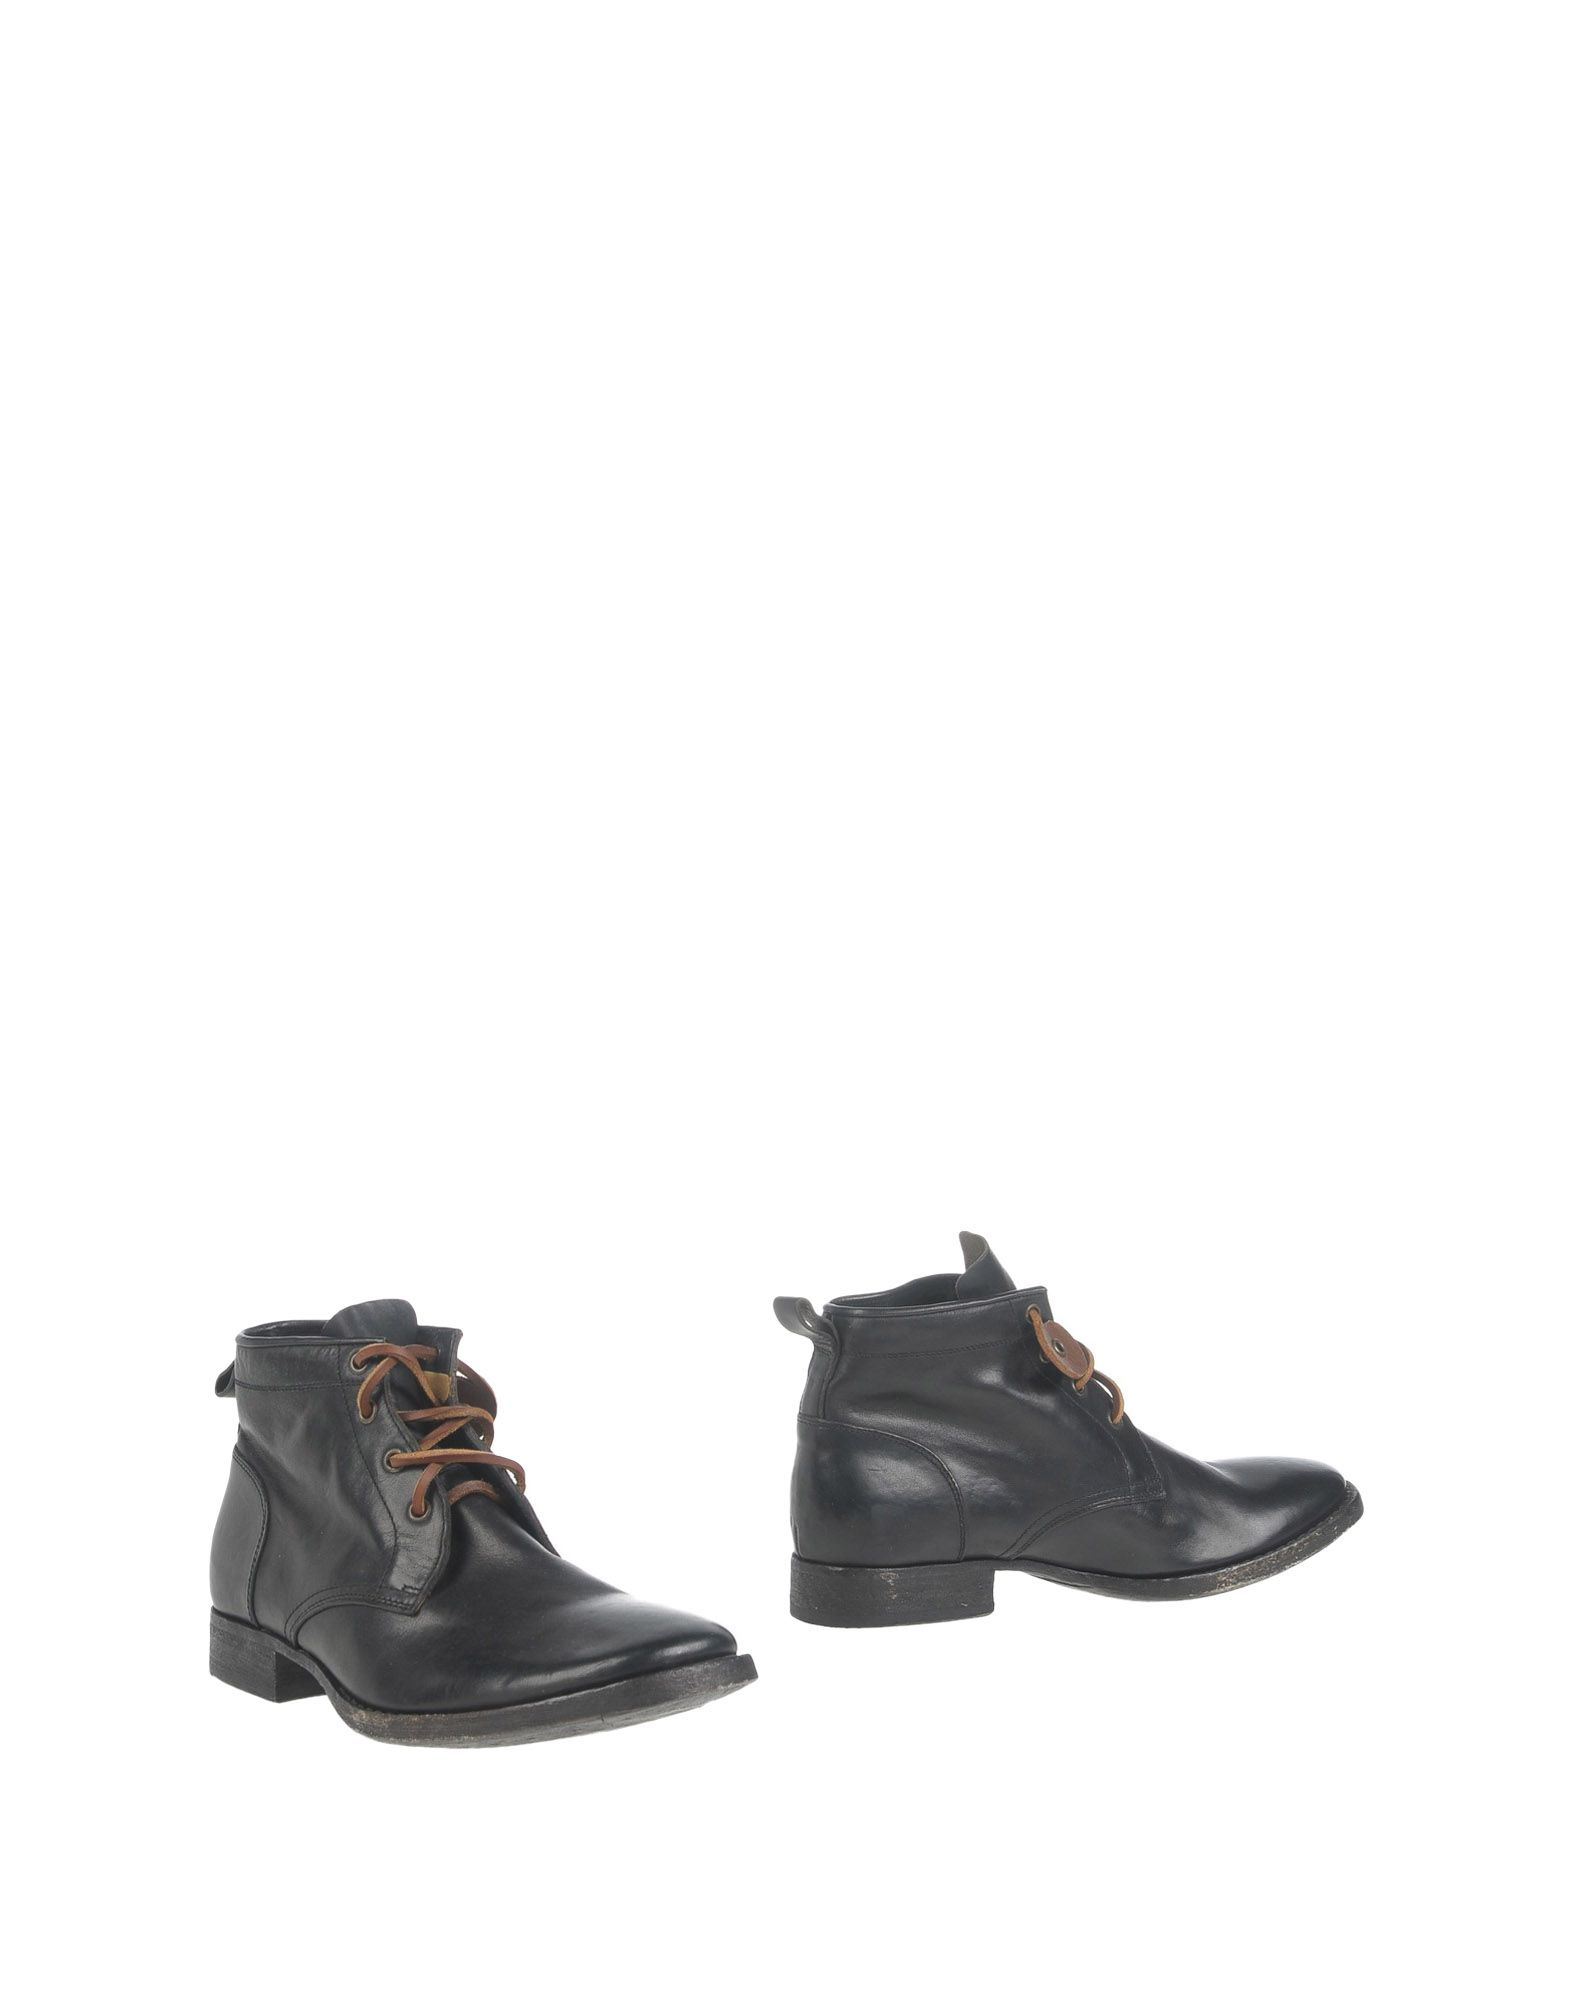 woman by common projects полусапоги и высокие ботинки 01000010 by BOCCACCINI Полусапоги и высокие ботинки